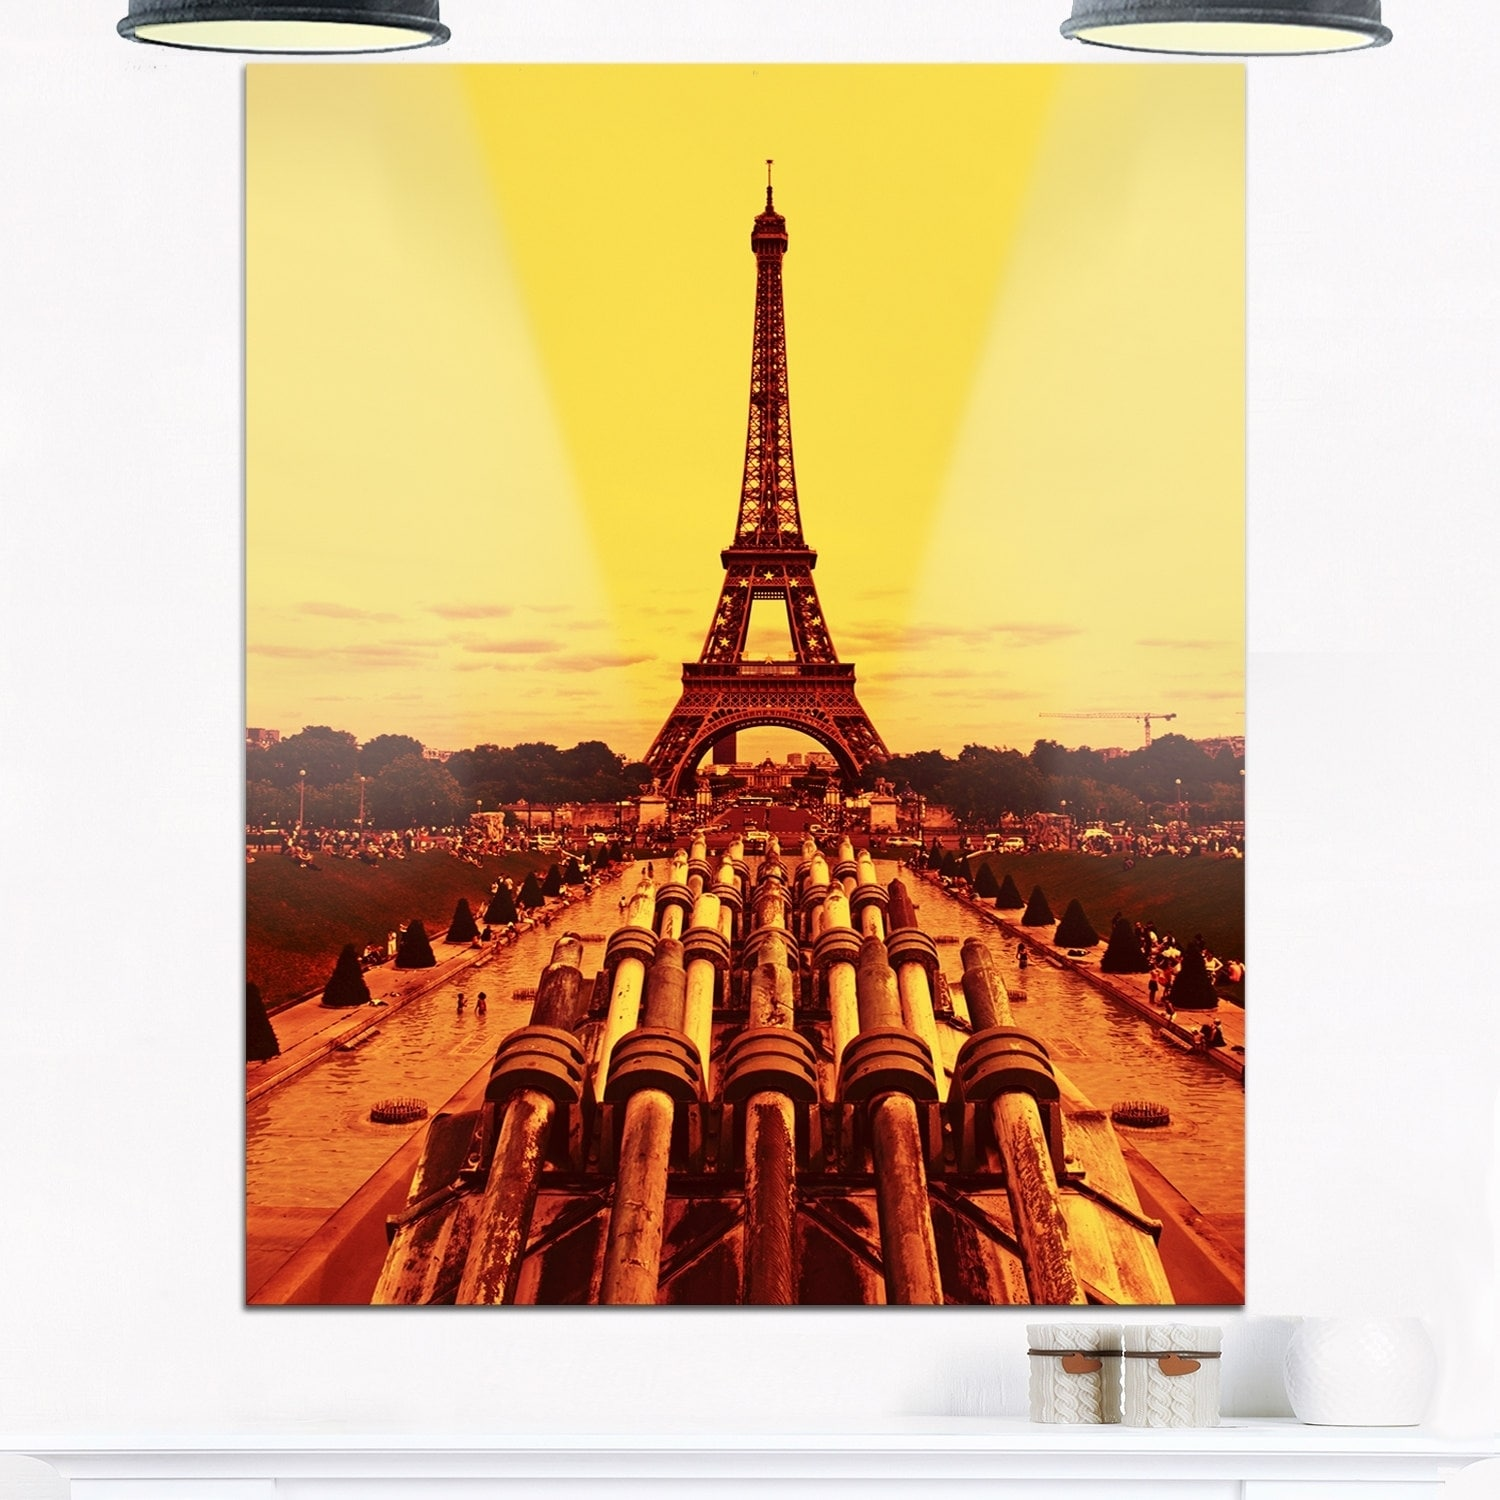 Vintage View of Paris Eiffel Tower Paris - Cityscape Glossy Metal ...